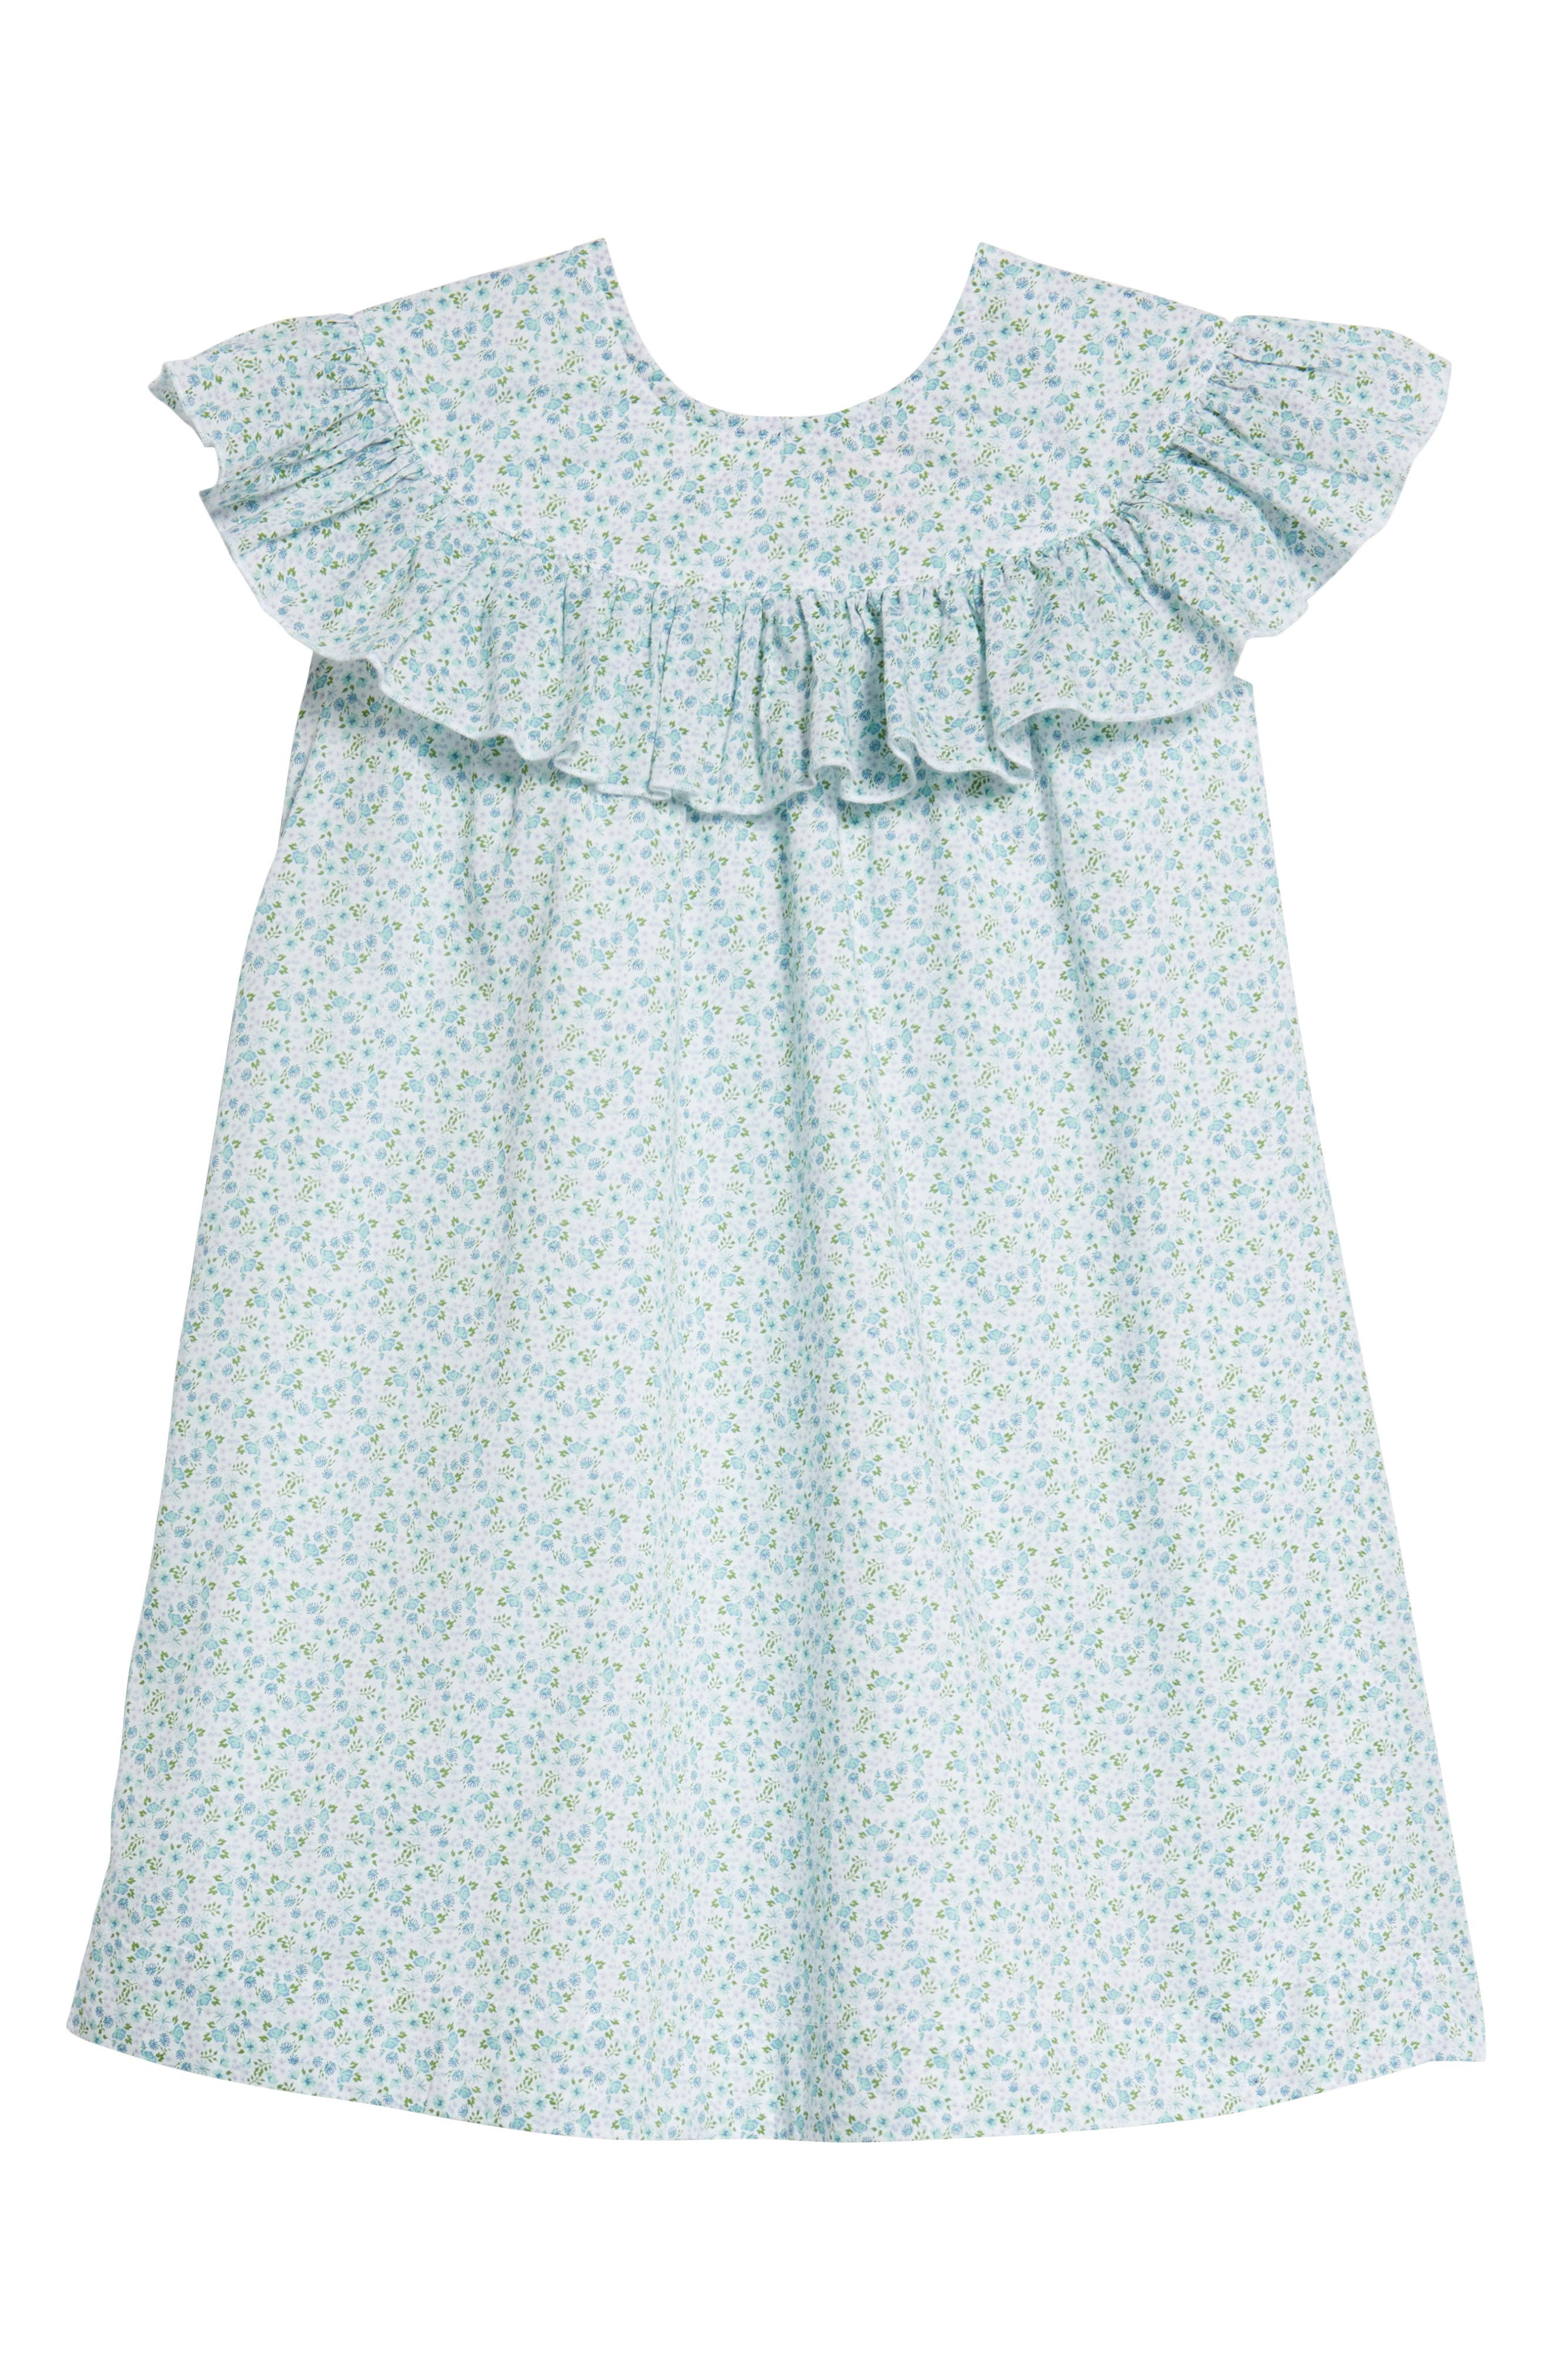 Ruffle Dress,                             Main thumbnail 1, color,                             White- Blue Tropic Ditsy